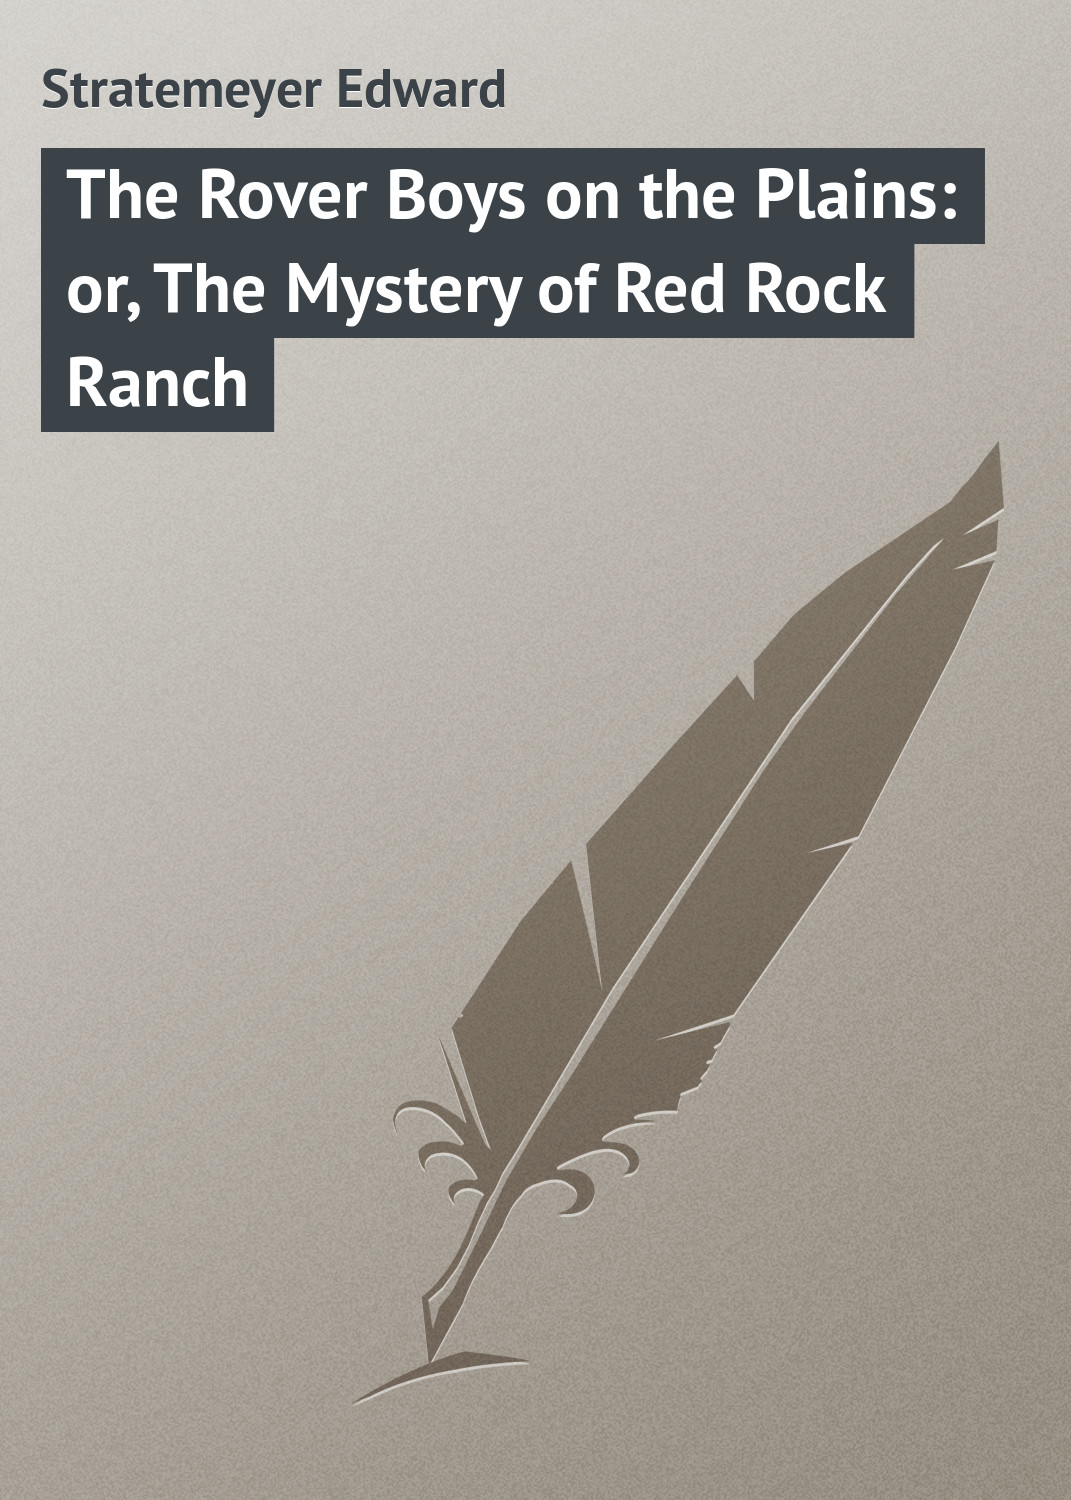 лучшая цена Stratemeyer Edward The Rover Boys on the Plains: or, The Mystery of Red Rock Ranch